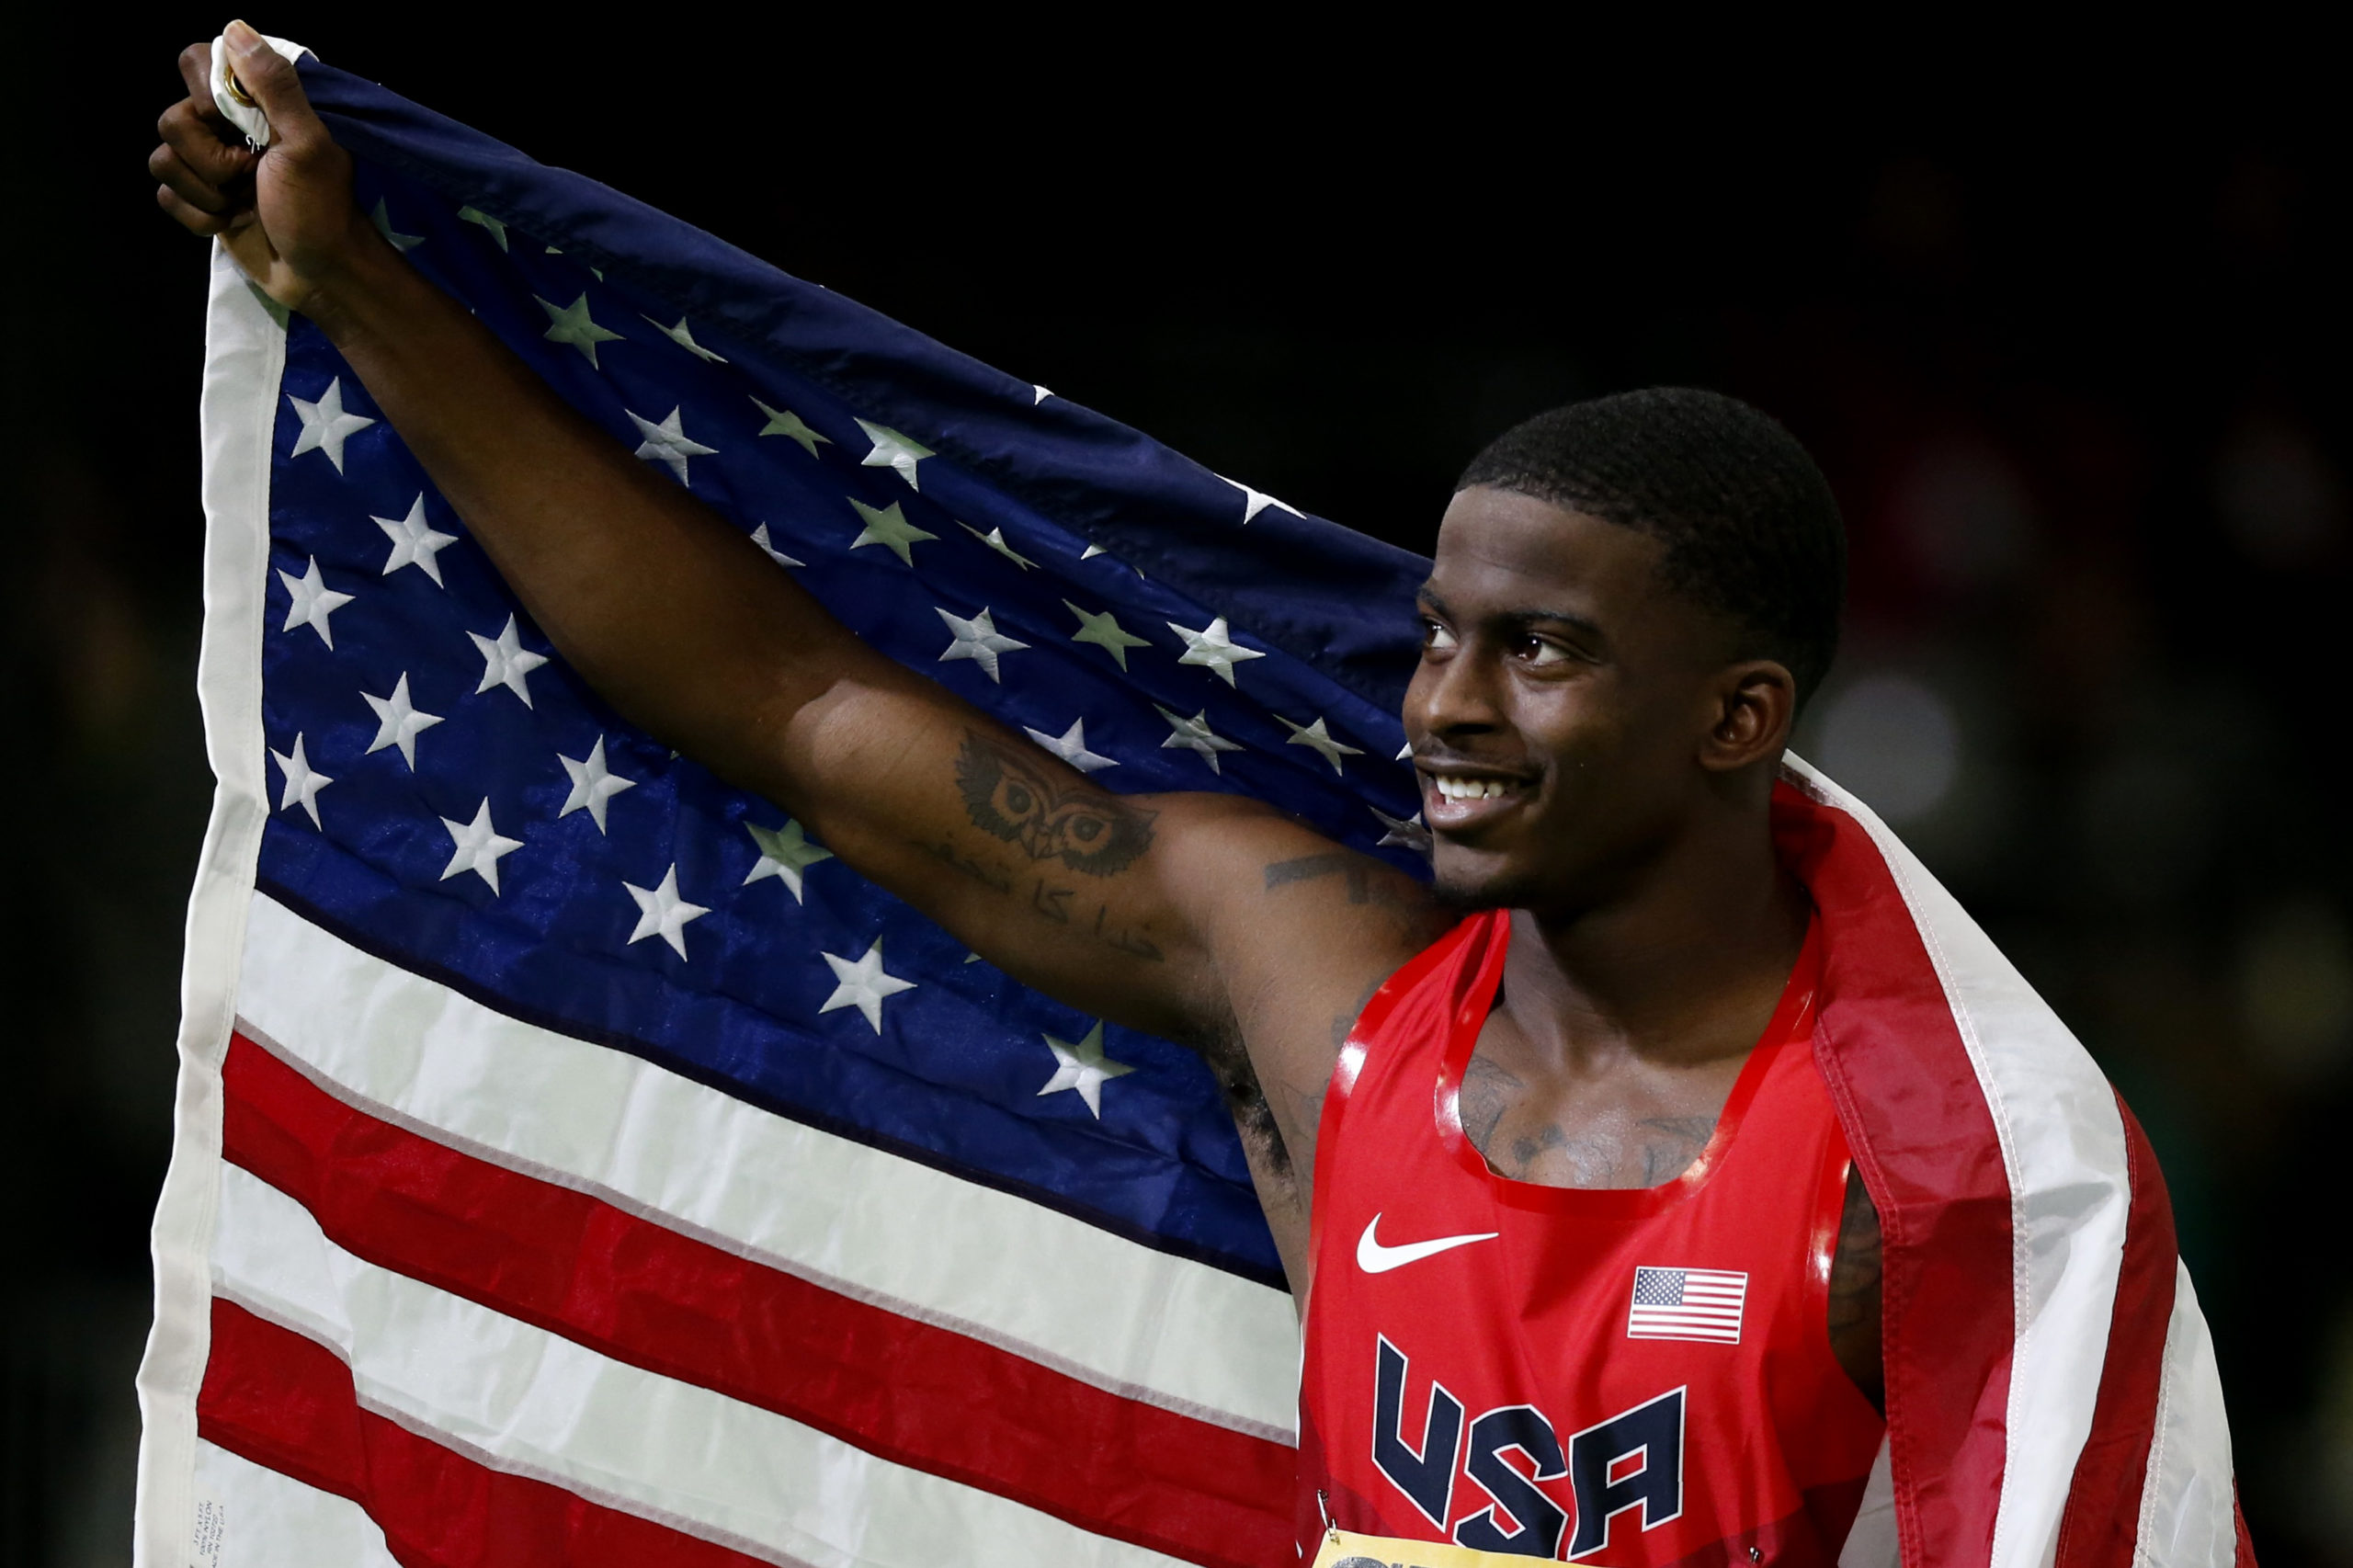 Six Black Men To Watch In The 100m In Tokyo, As Well As A Chinese and Japanese Contender